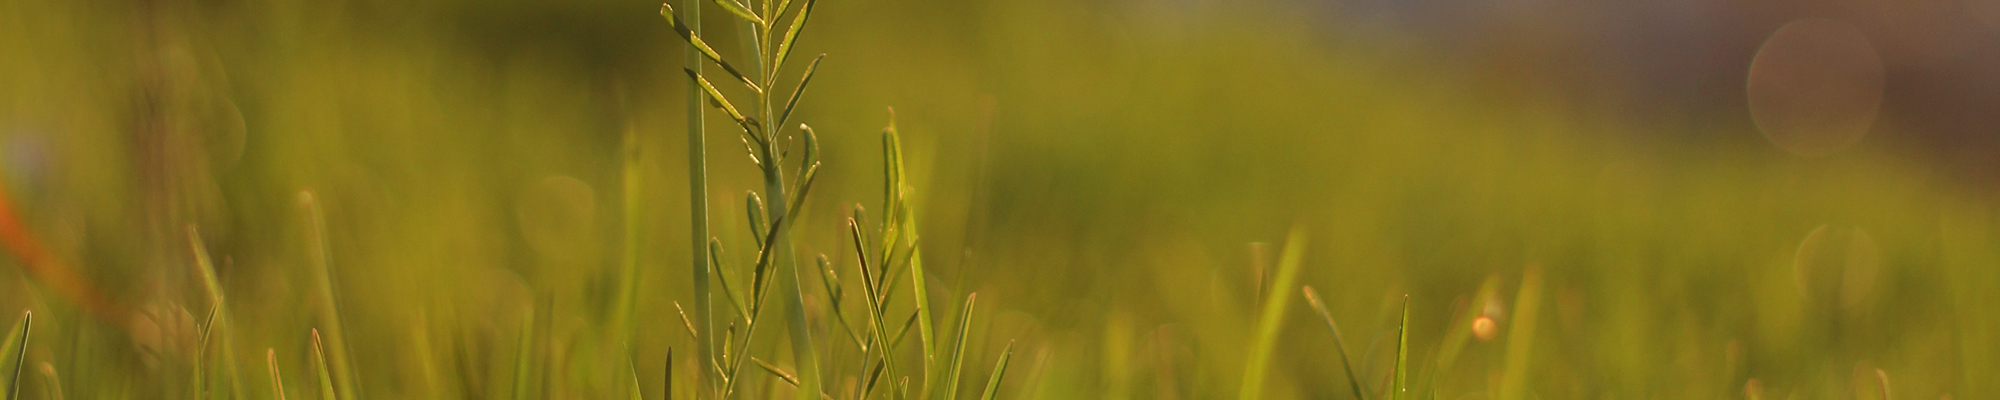 Close up of grass in a field